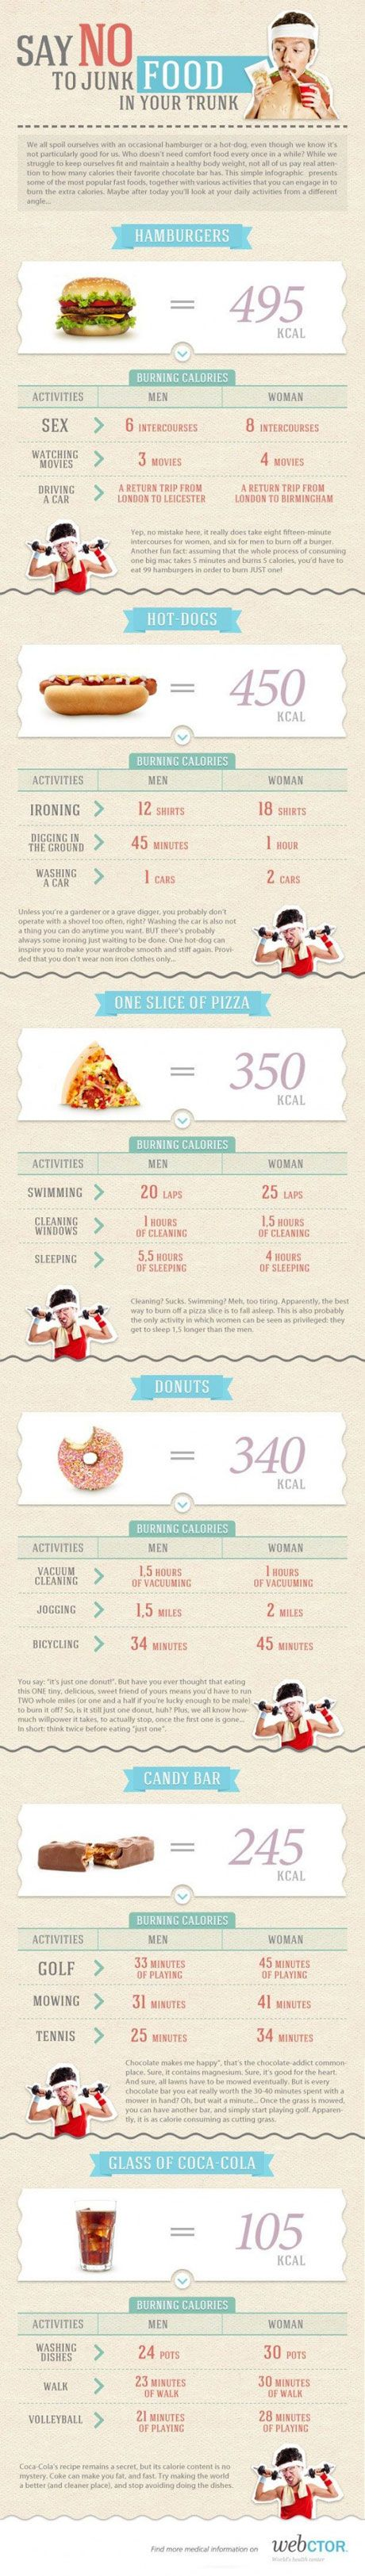 Good to know. Equivalents for bouts of exercise to burn off one item of junk food. Puts it all in a good perspective.